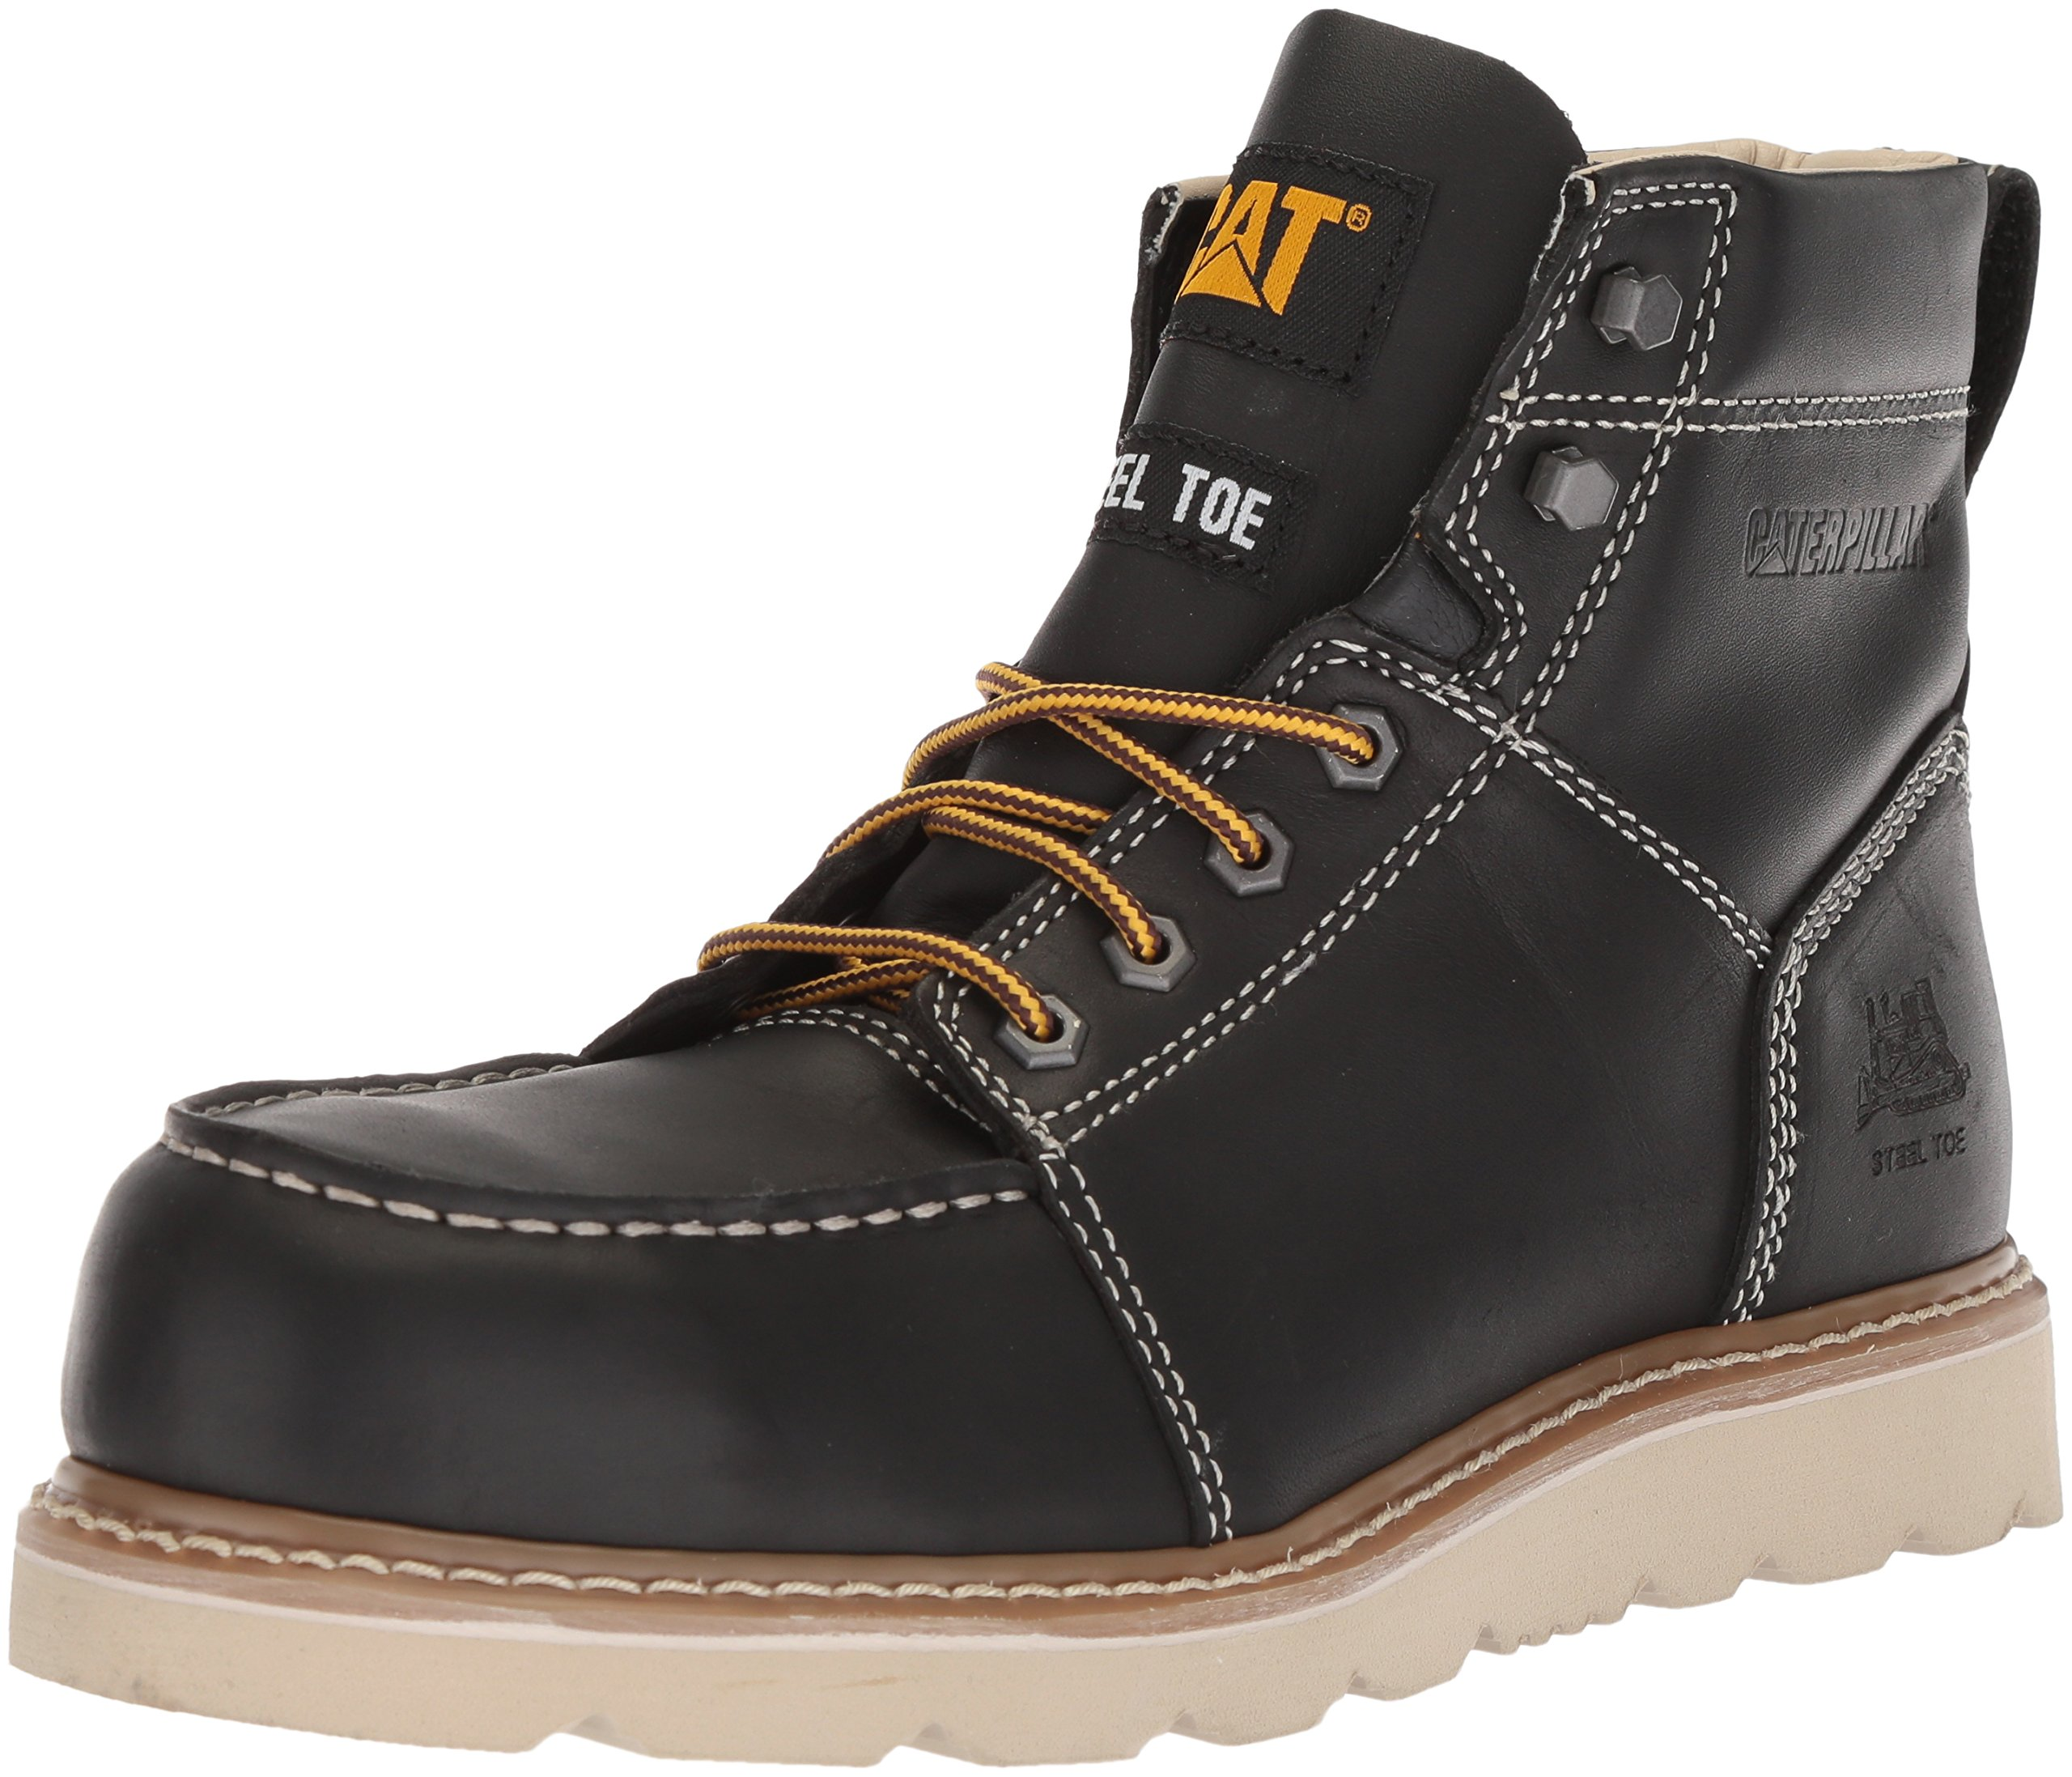 Caterpillar Men's Tradesman Steel Toe Industrial Boot, Black, 9.5 Wide US by Caterpillar